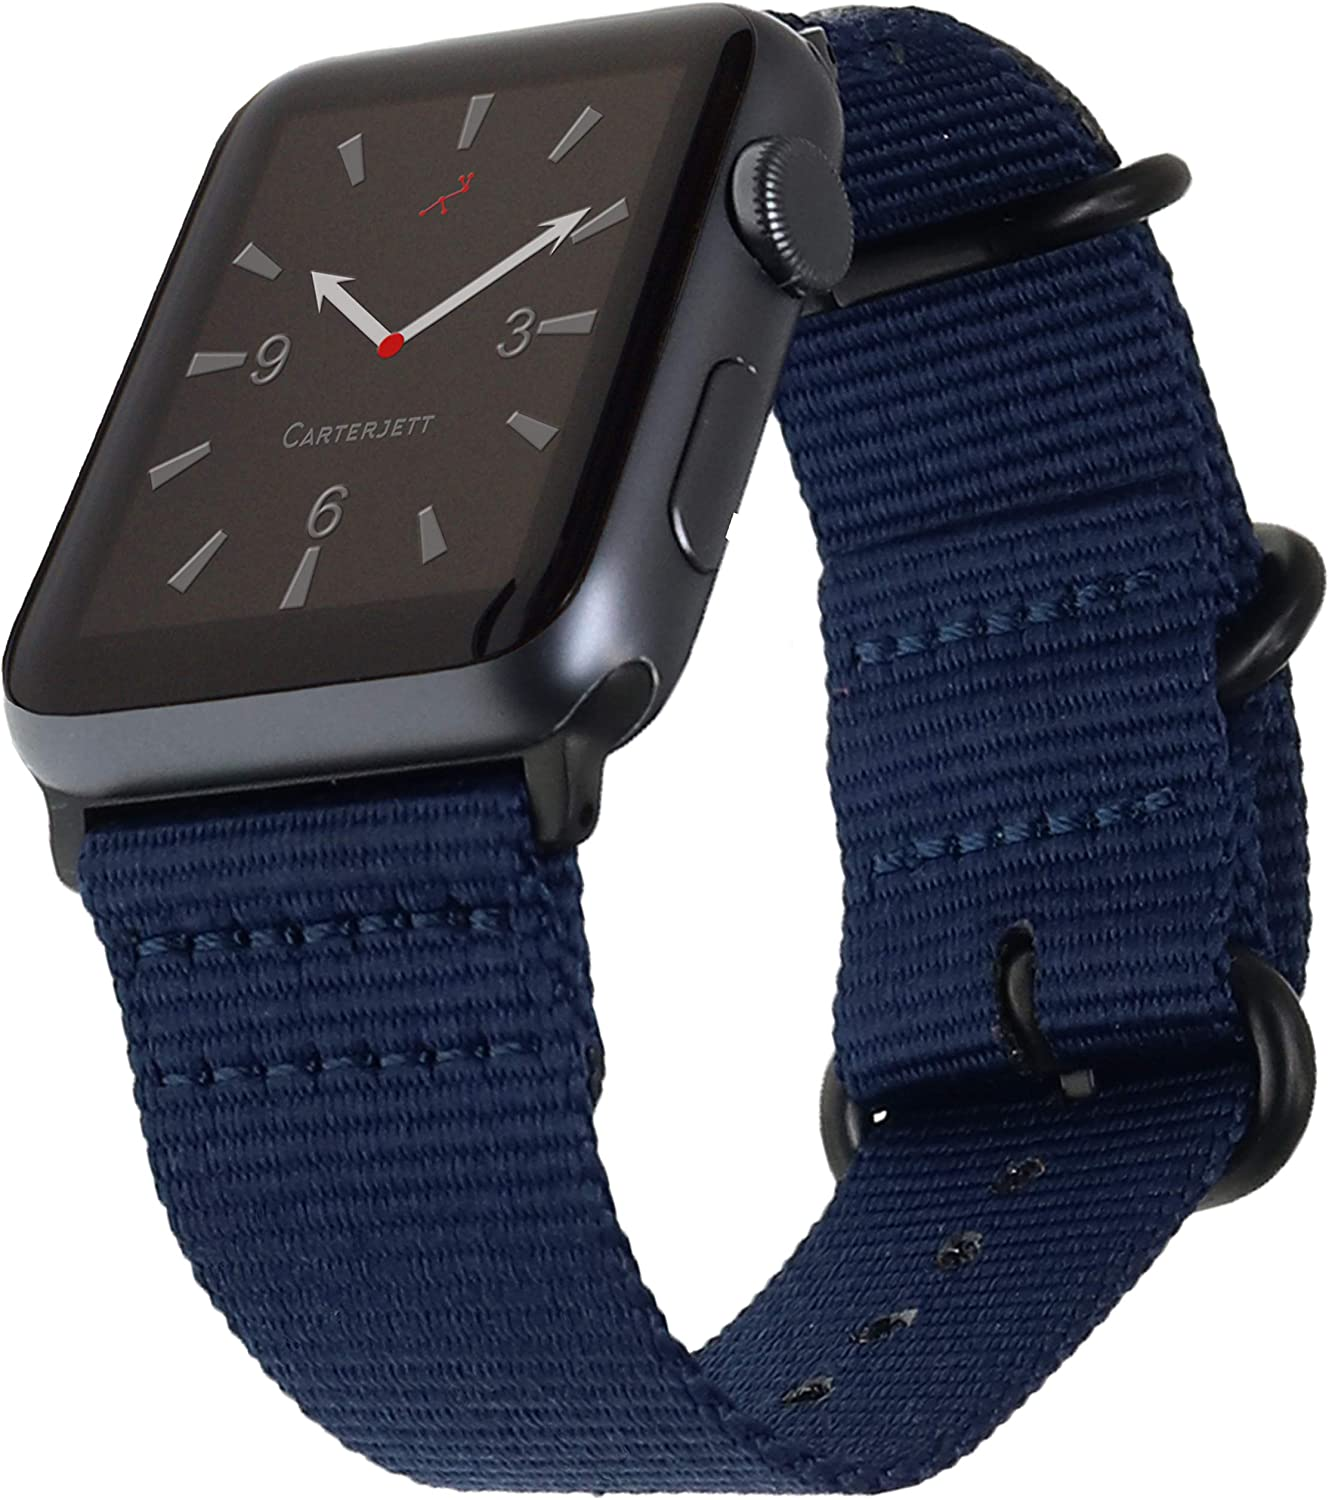 Carterjett Compatible with Apple Watch Band 42mm 44mm Nylon Sport iWatch Bands Replacement Woven Military Strap Rugged Steel Adapters Loop Buckle for Series 5 Series 4 3 2 1 (42 44 S/M/L Navy Blue)